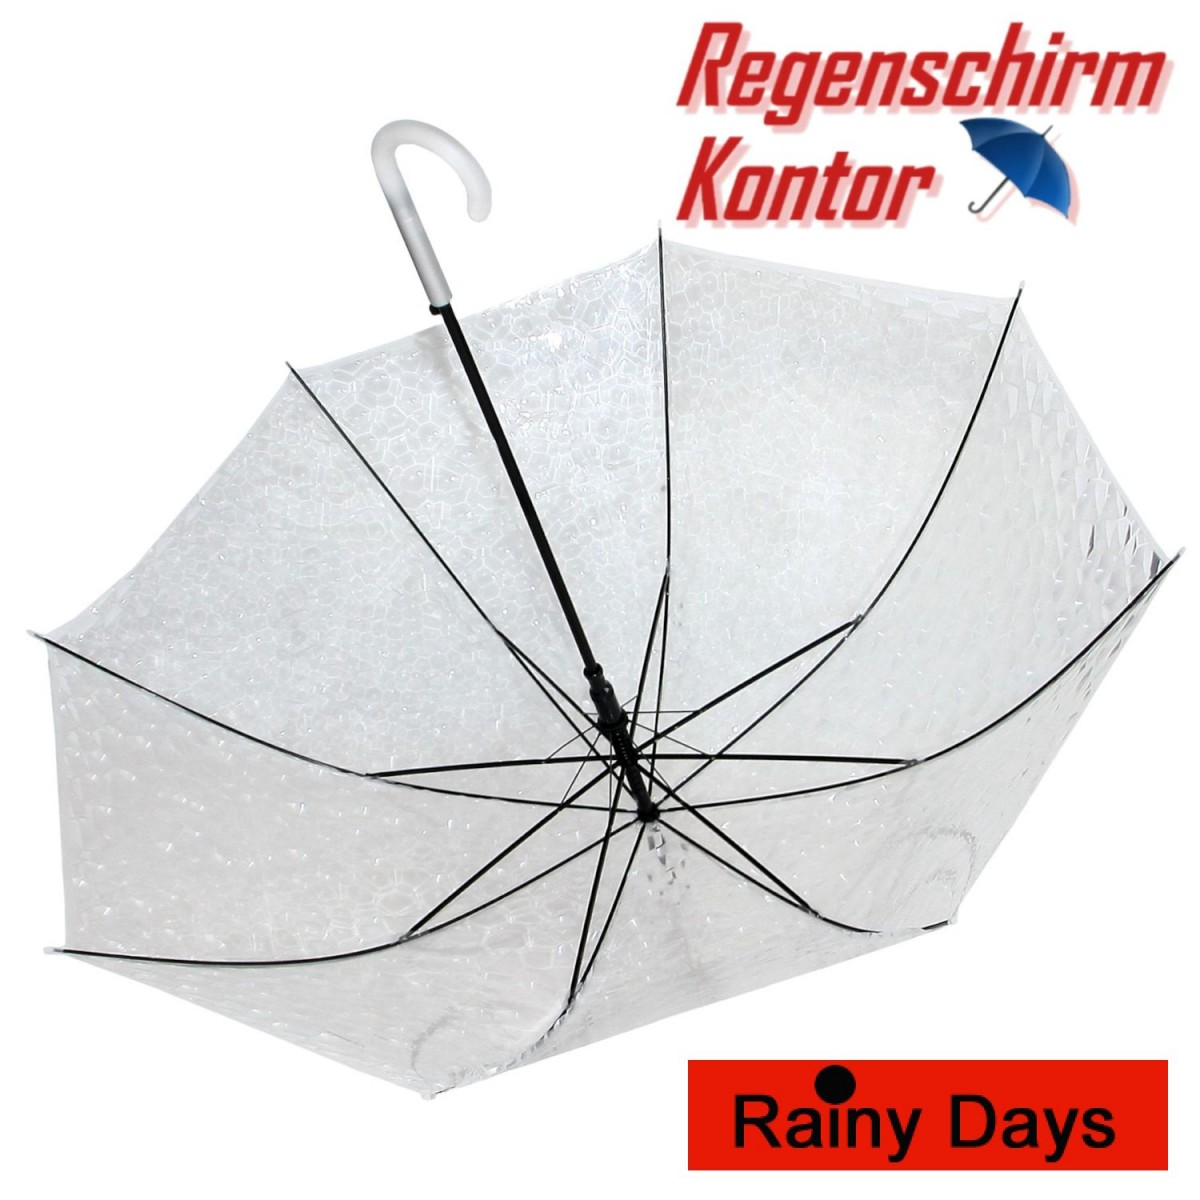 regenschirme onlineshop stockschirme taschenschirme knirps doppler happy rain regenschirmkontor. Black Bedroom Furniture Sets. Home Design Ideas